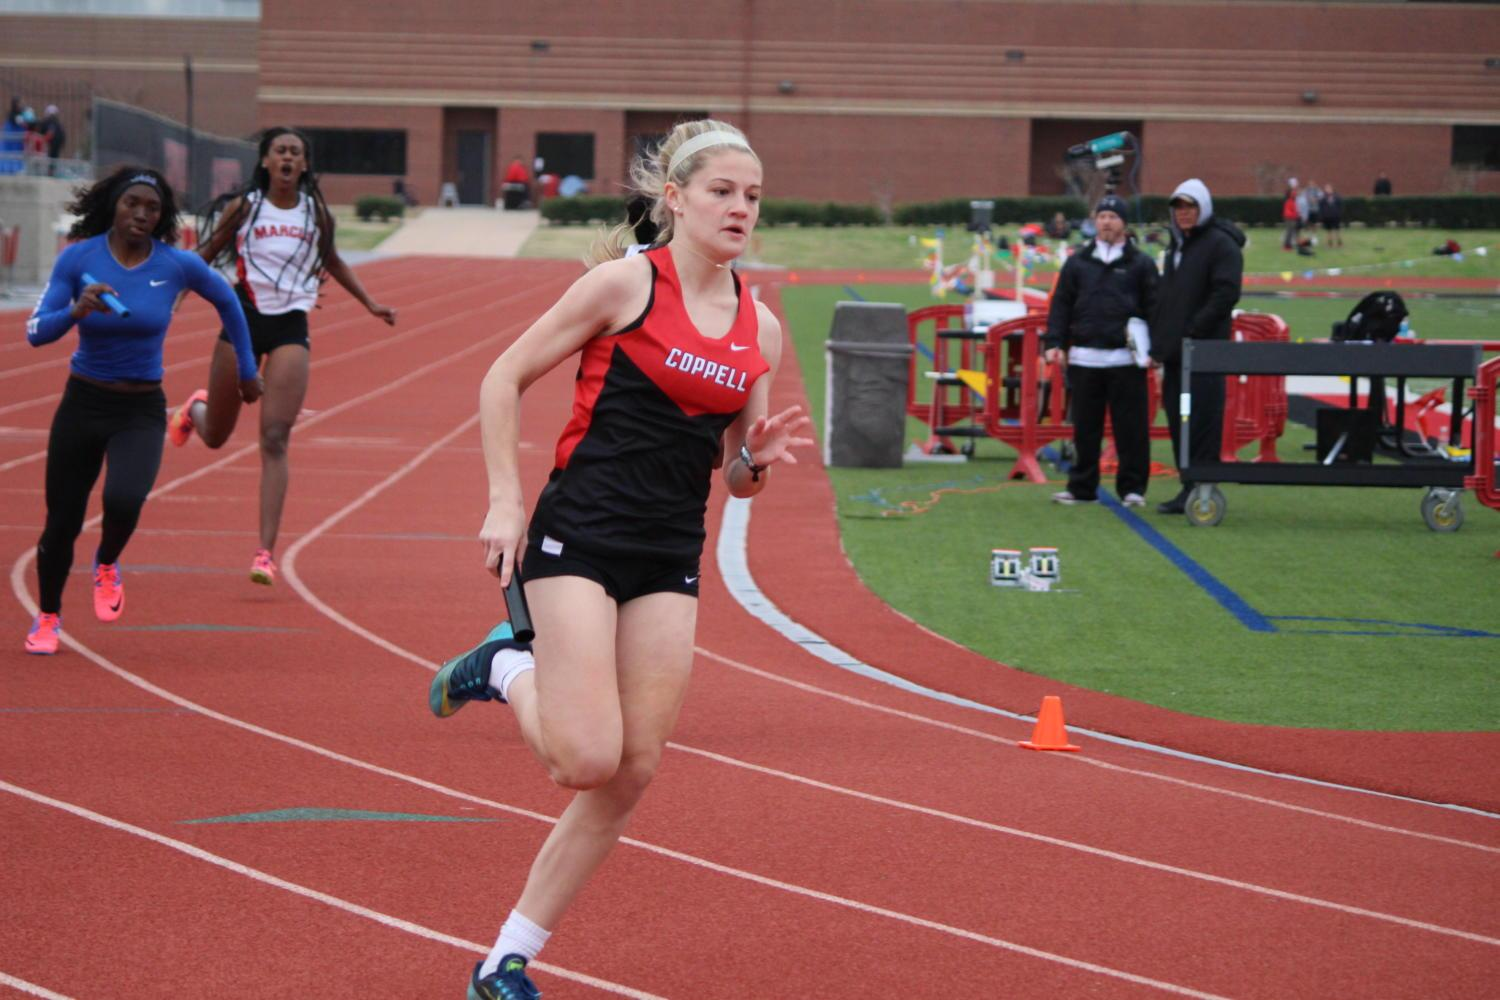 Coppell High School freshman multisport athlete Lauren Kellett runs a relay race at Buddy Echols Field during the Coppell Relays on March 4. Kellet won The Sidekick's Freshman Athlete of the Year honors. Photo by Kelly Monaghan.